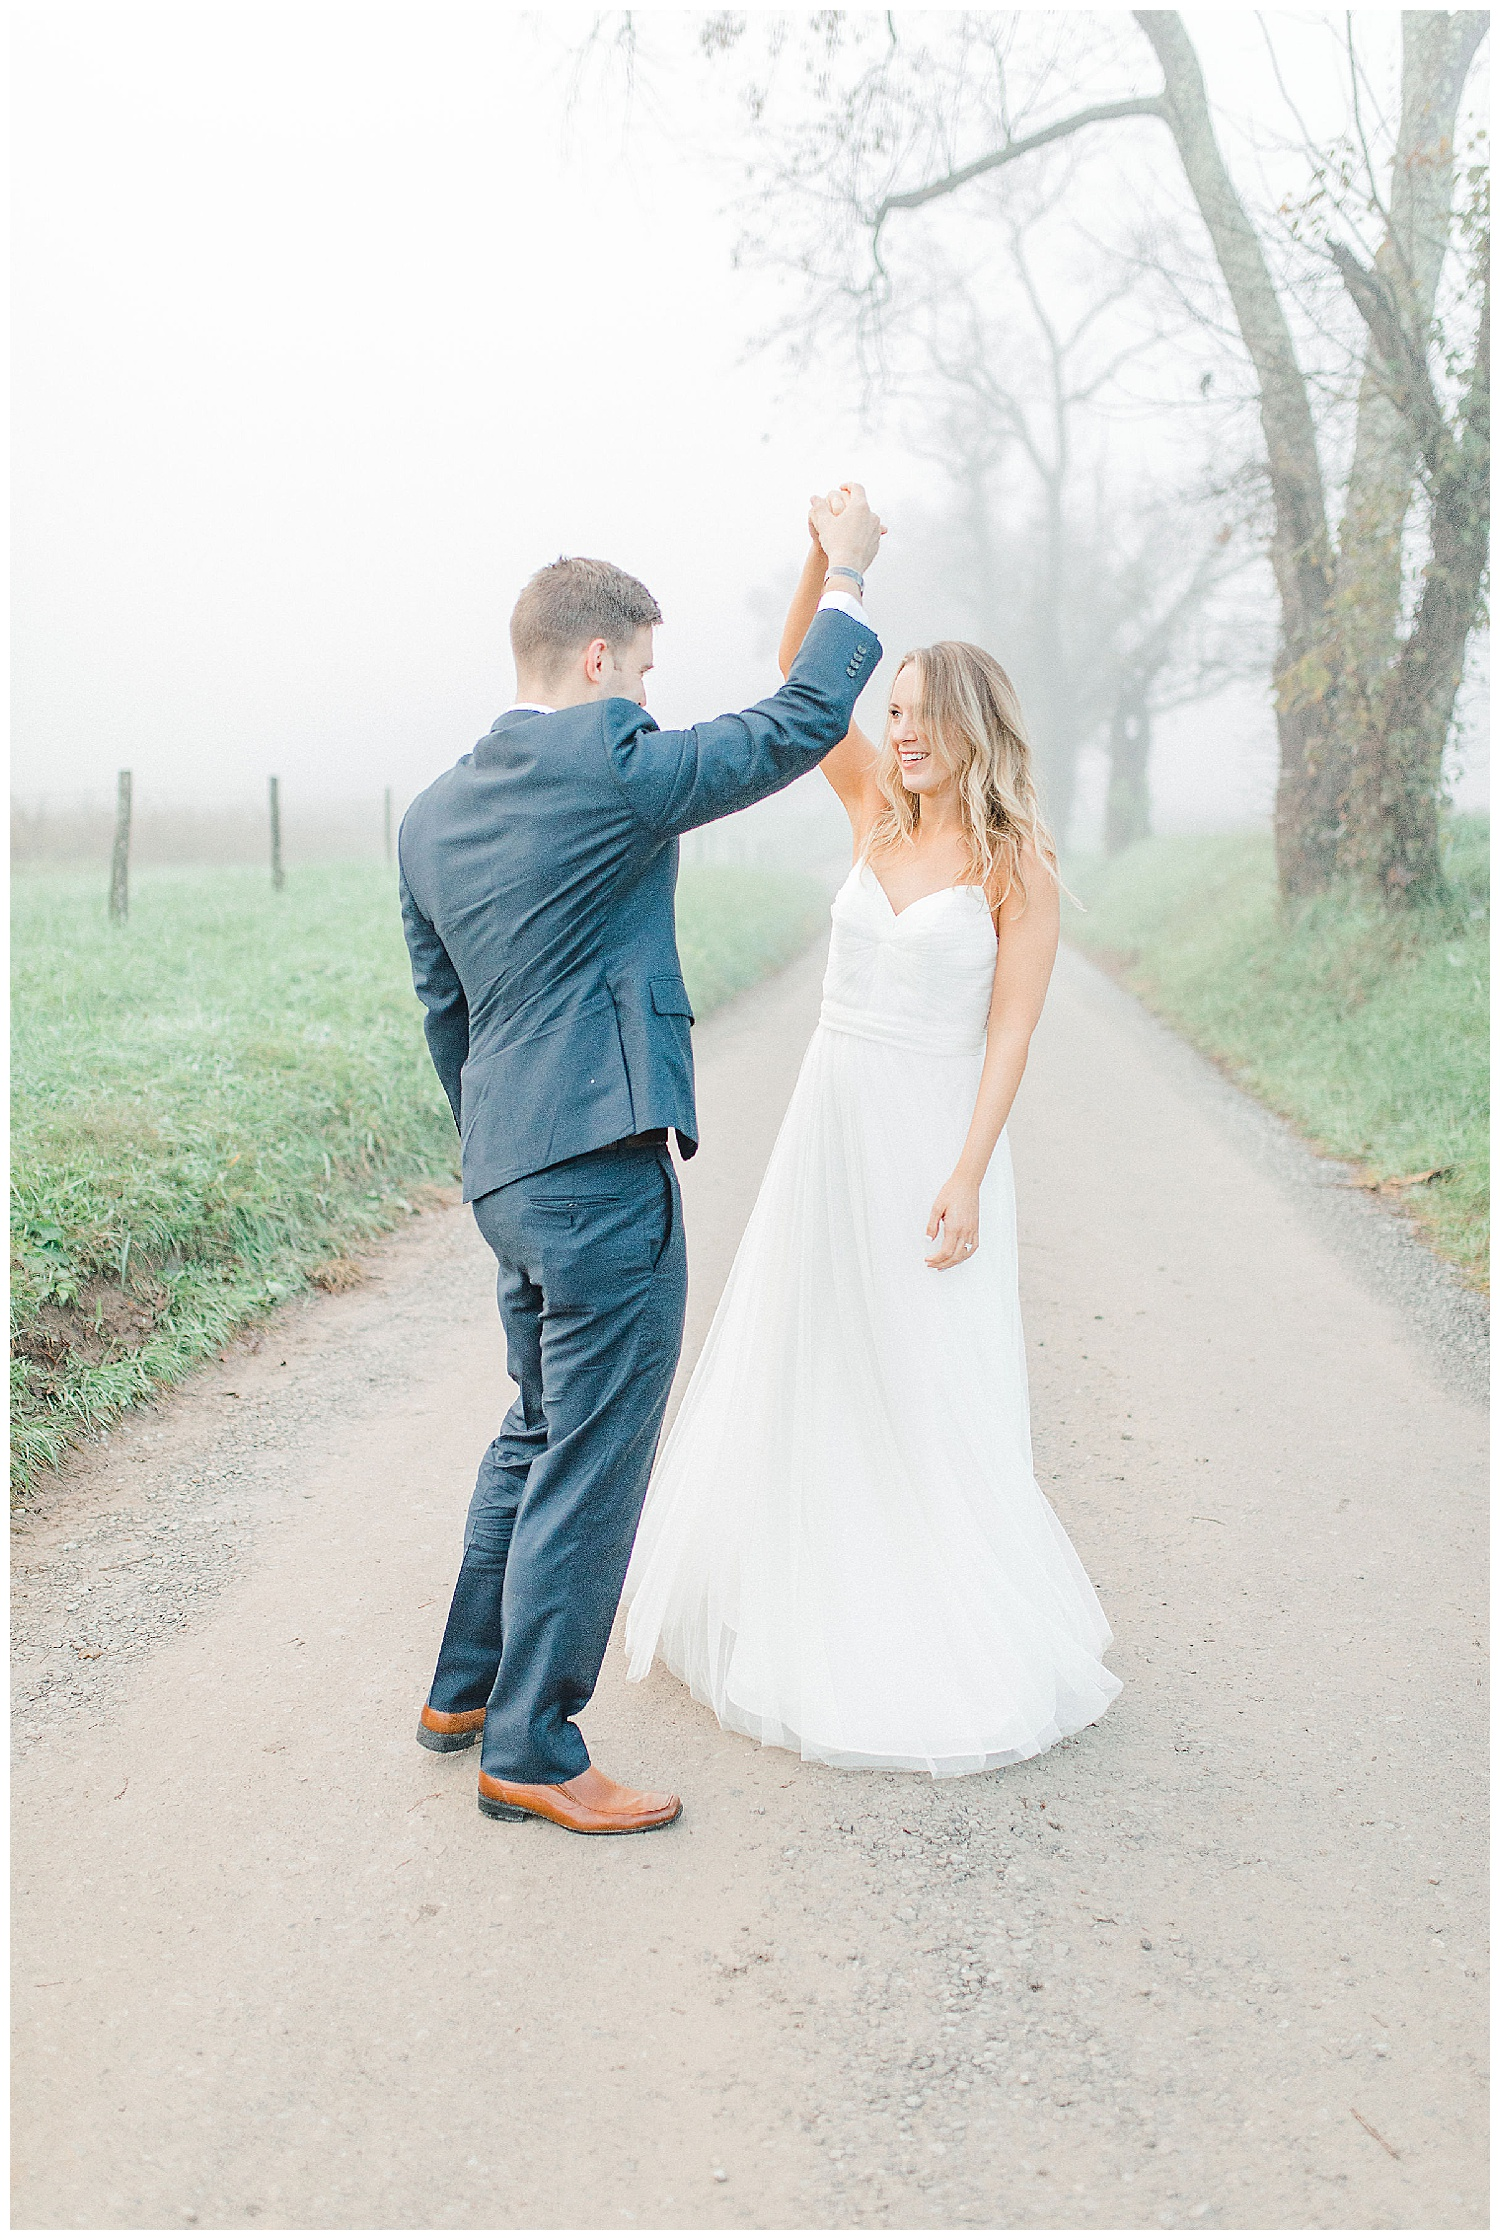 Emma Rose Company recently got to travel all the way to Nashville to photograph the most beautiful post-wedding bride and groom portraits in the Great Smoky Mountains with a gorgeous couple! Nashville wedding inspiration at it's finest._0002.jpg